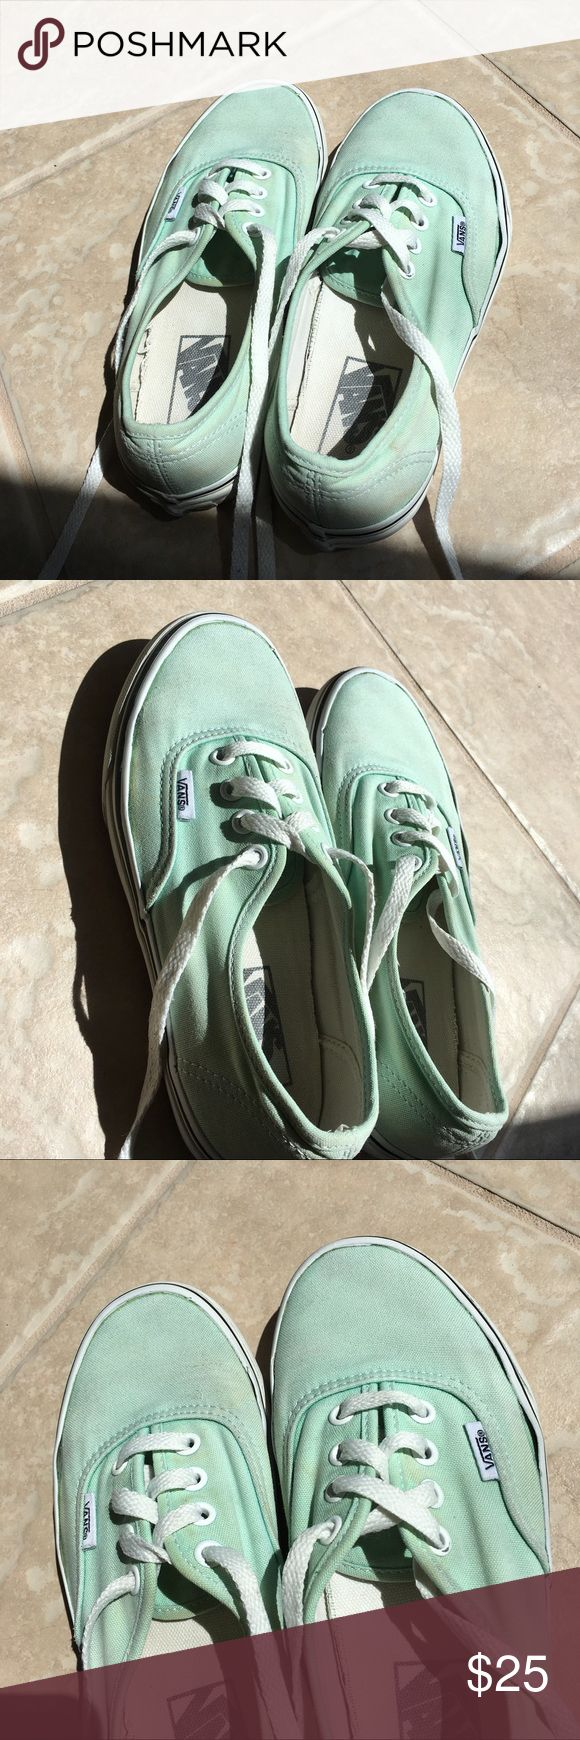 Mint Green Vans The price reflects the flaws on the shoes Vans Shoes Sneakers